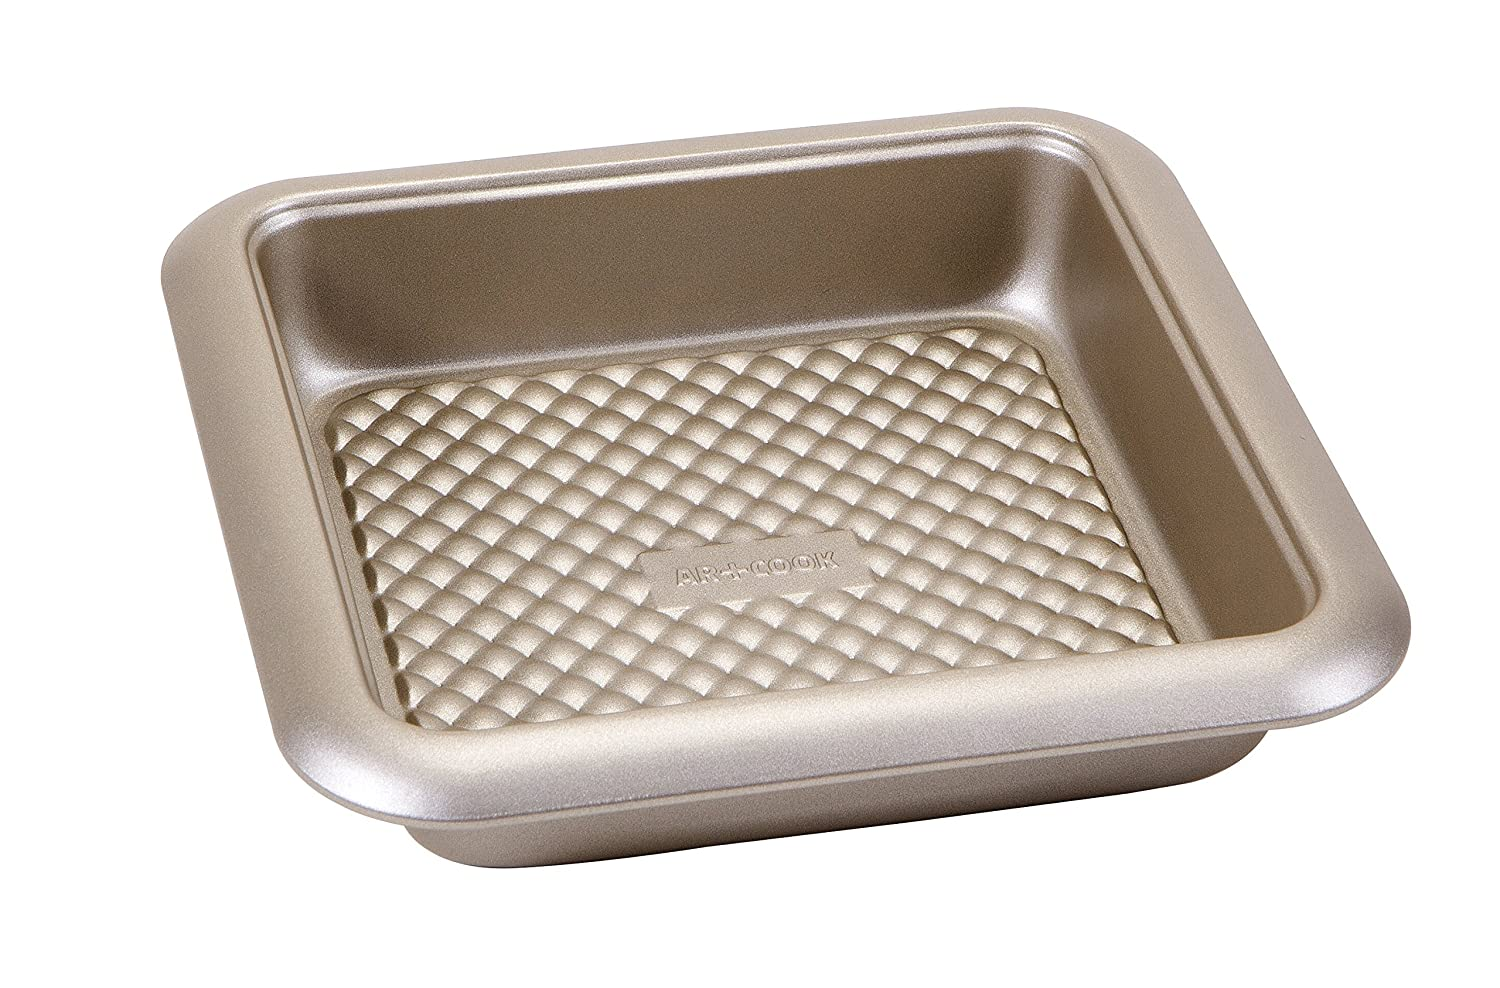 Art and Cook Non-Stick Carbon Steel Square Baking Pan, 9.5' x 9.5', Champagne 9.5 x 9.5 Art+Cook ACB9491